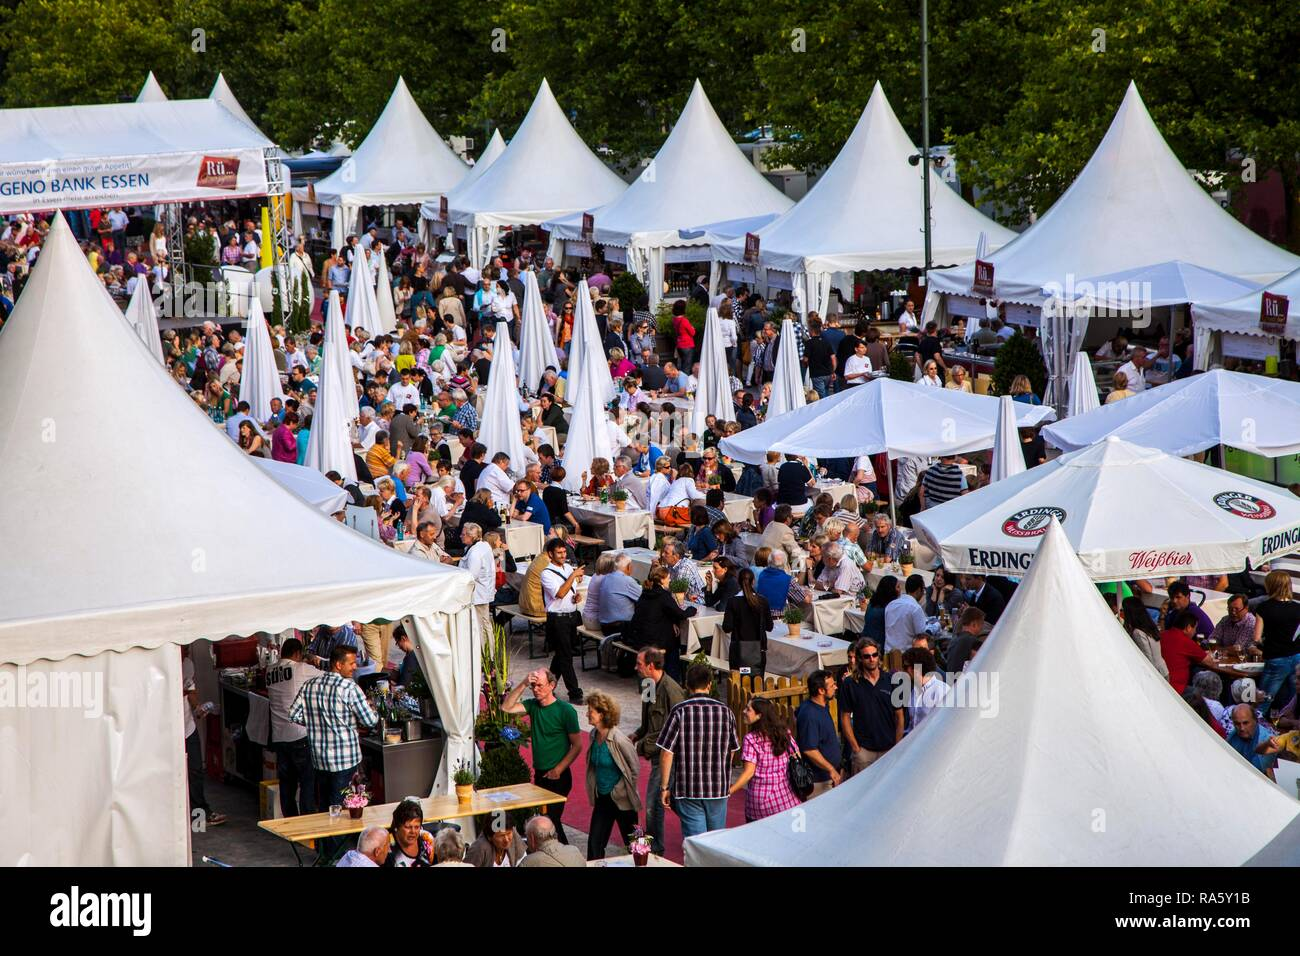 Rue-Genuss, catering and cooking festival in Essen-Ruettenscheid, with over 20 restaurants, bars, cafes offering food and live - Stock Image